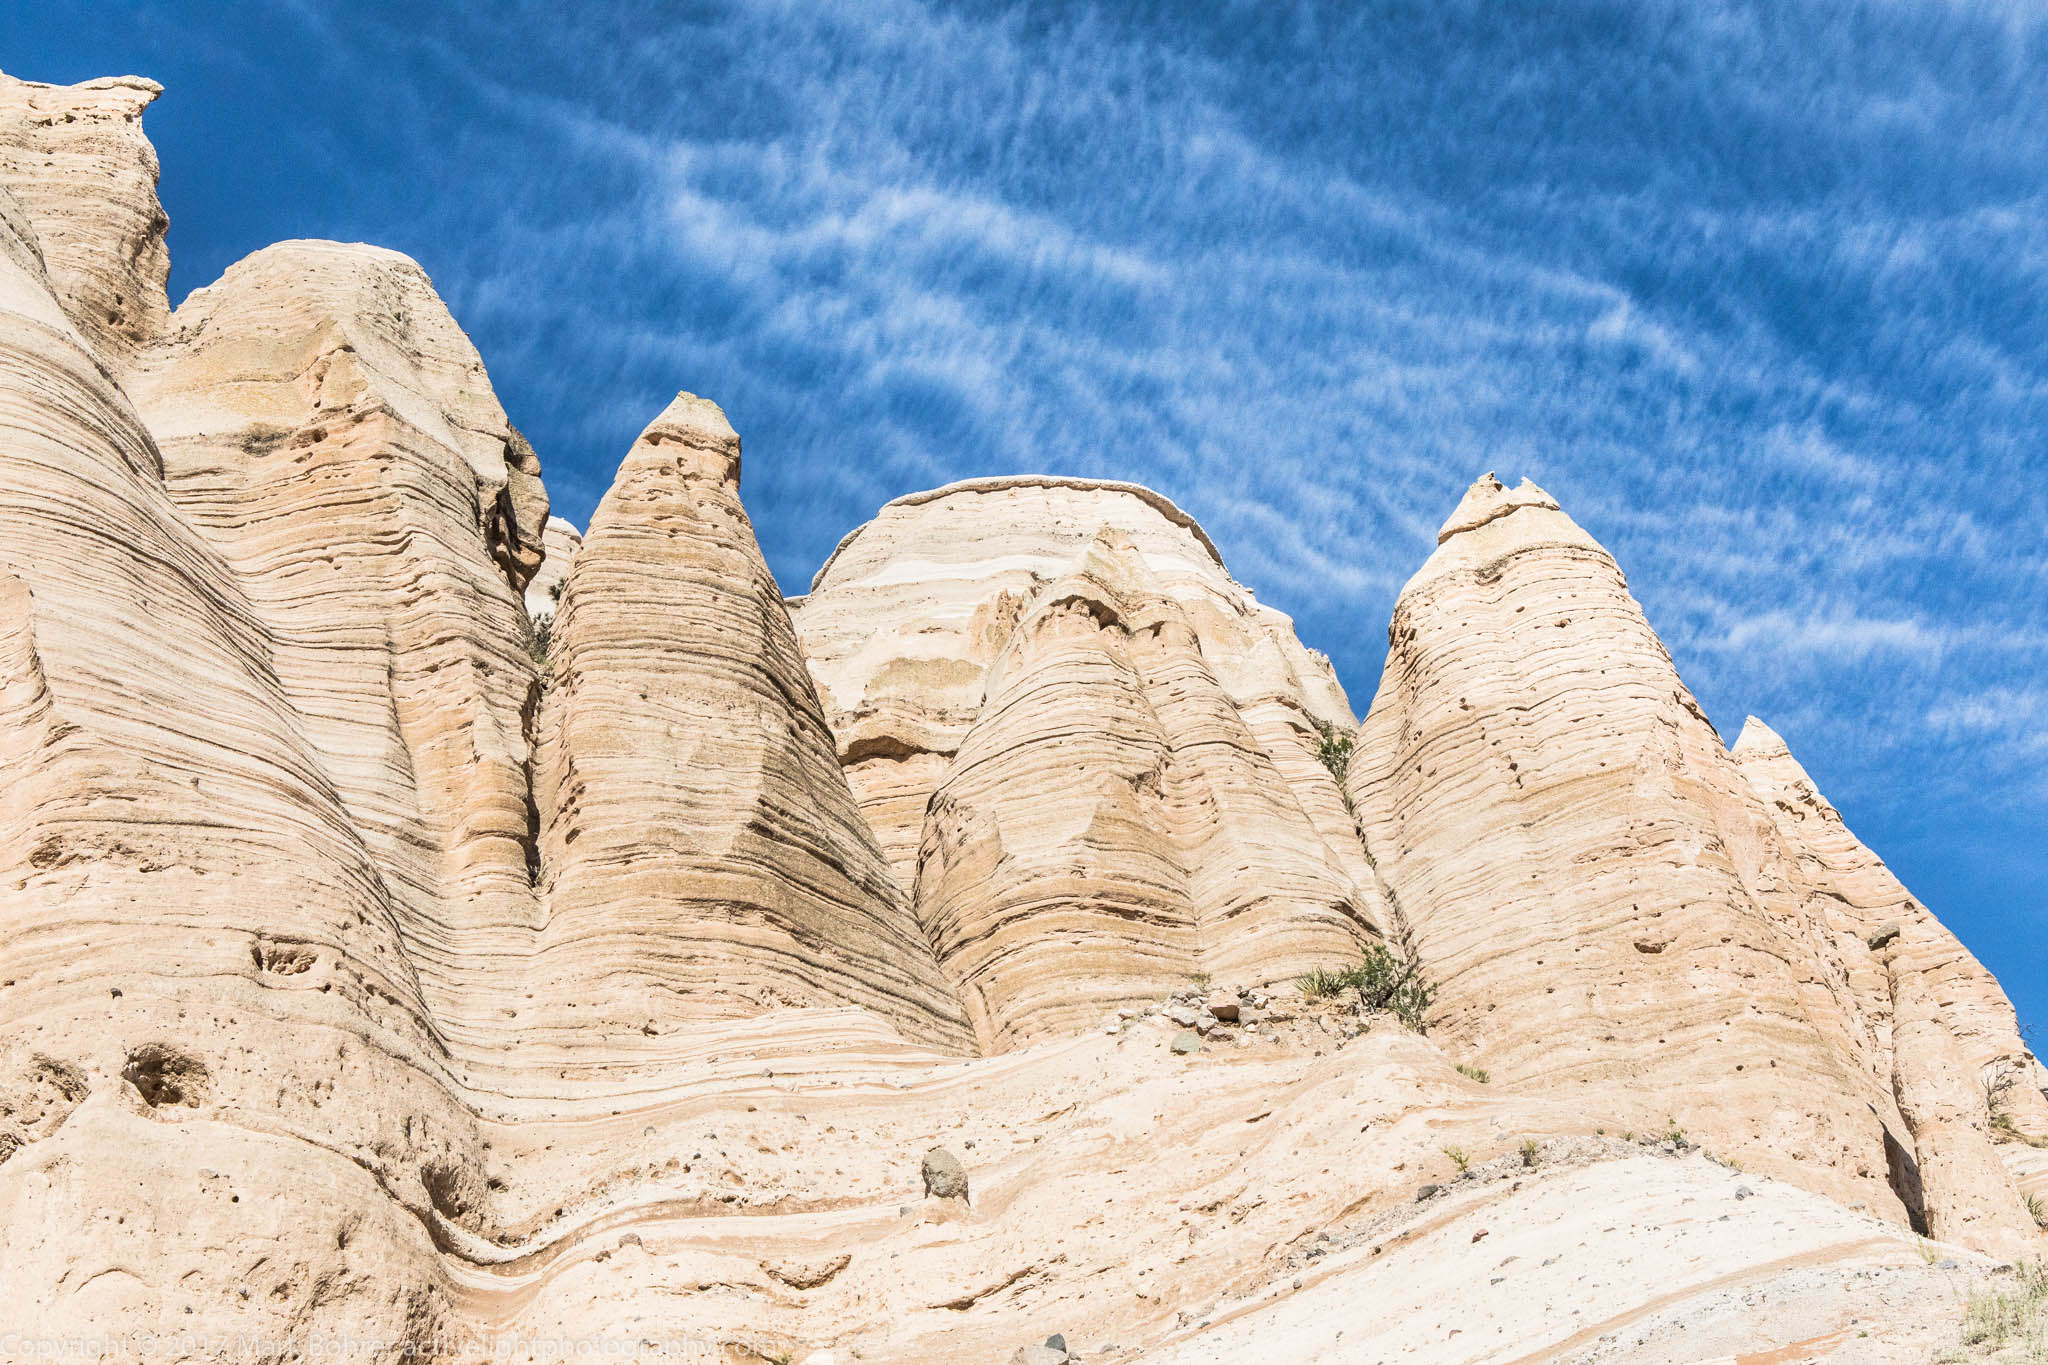 Swirled rock and delicate sky, Kasha-Katuwe Tent Rocks National Monument